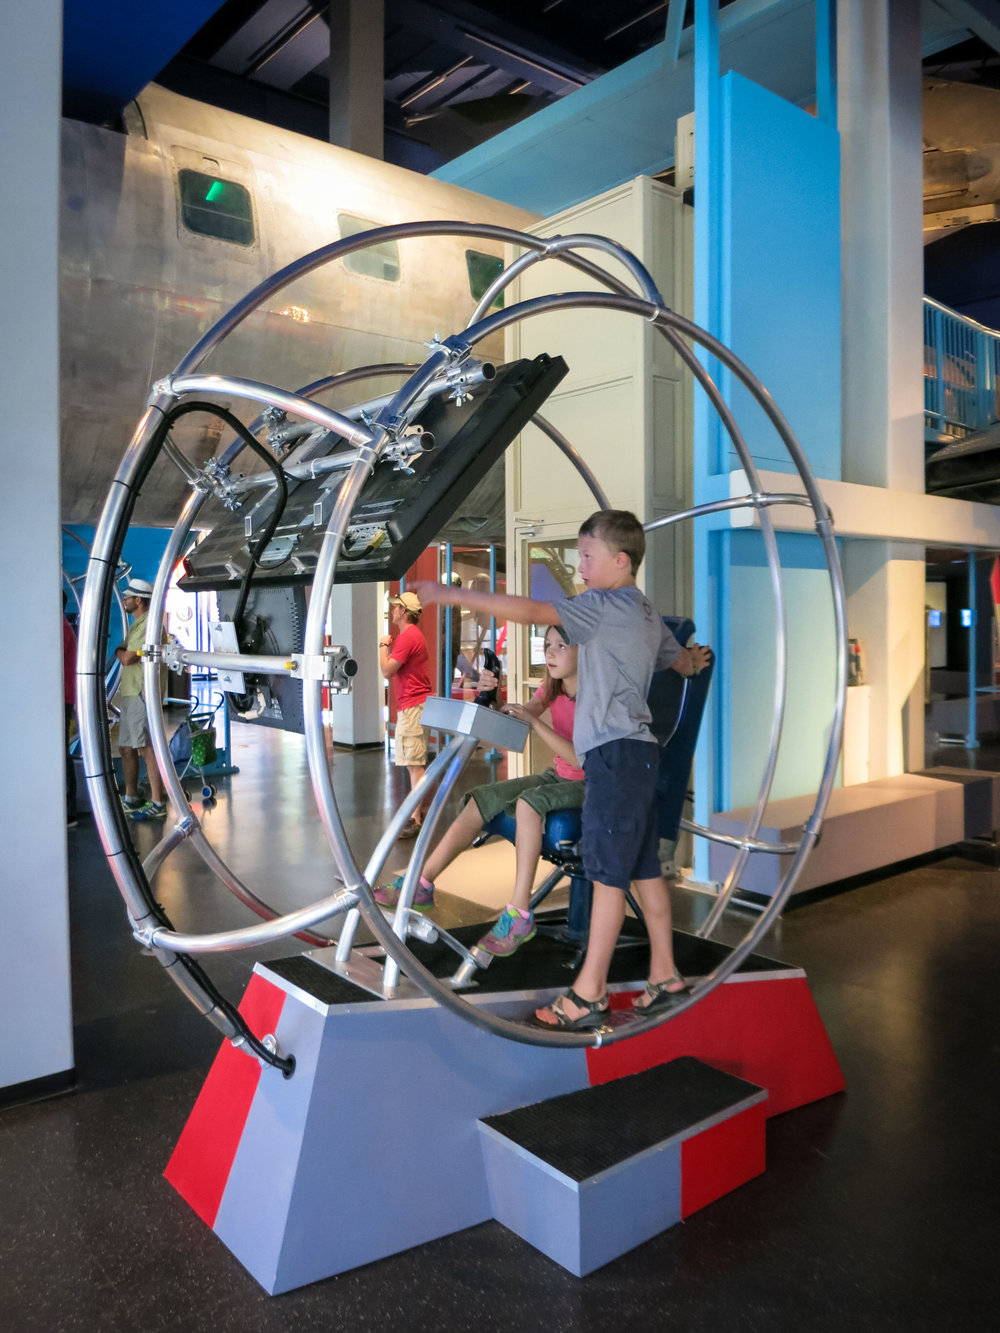 """We made two of these flight simulators. I feel that the """"cool"""" factor is still there, but the open design allows for much greater participation and group fun."""